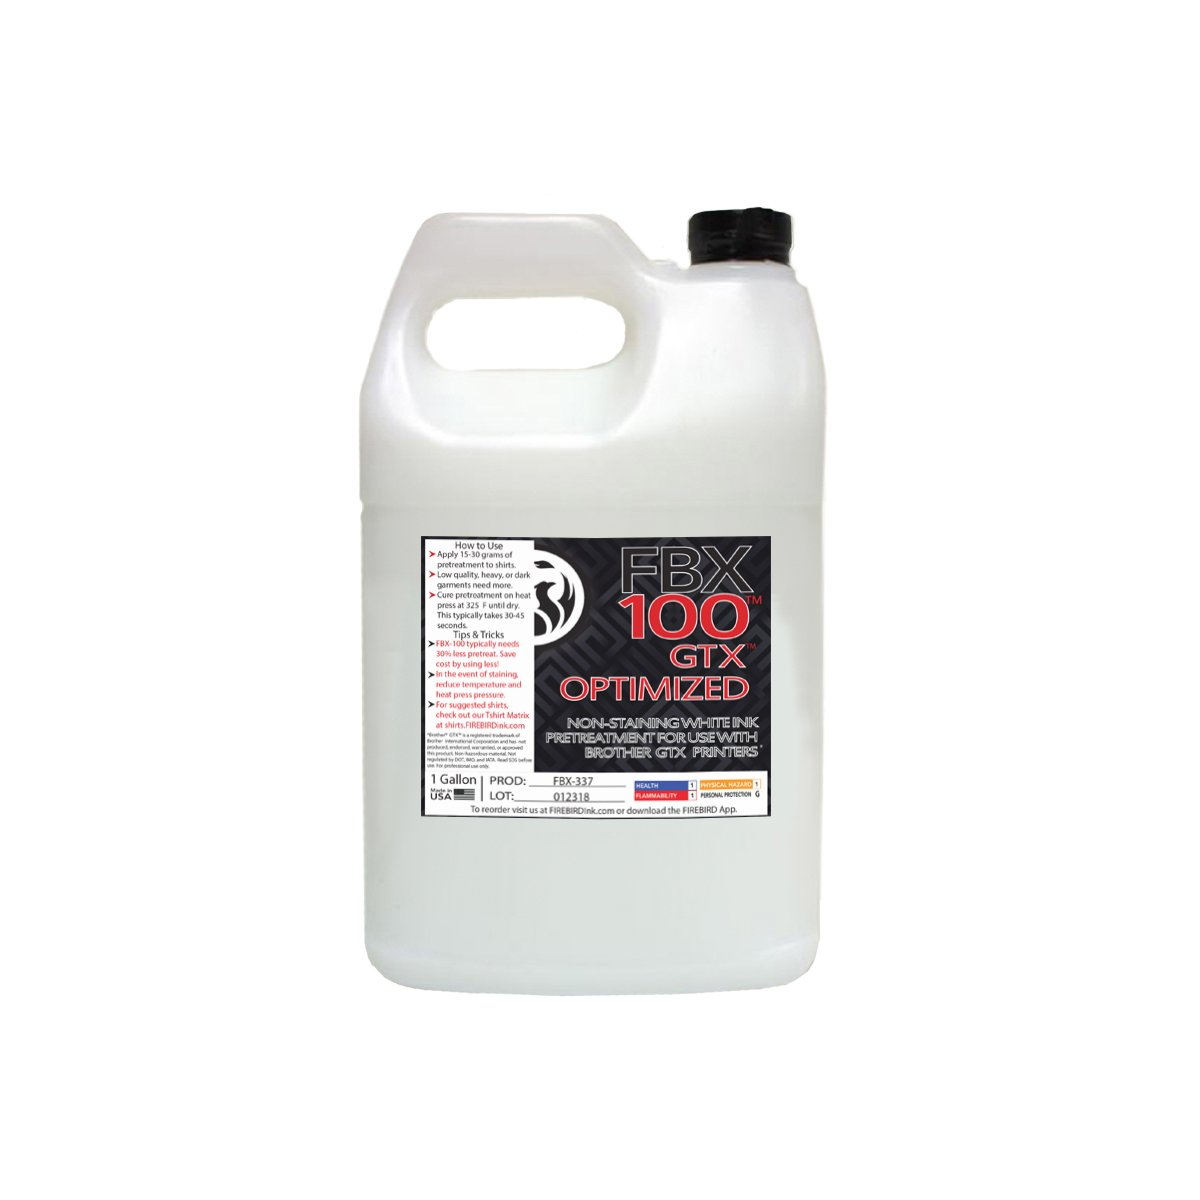 Brother GTX Optimized Pretreatment for DTG Printer Firebird 1 Gallon by All American MFG & Supply